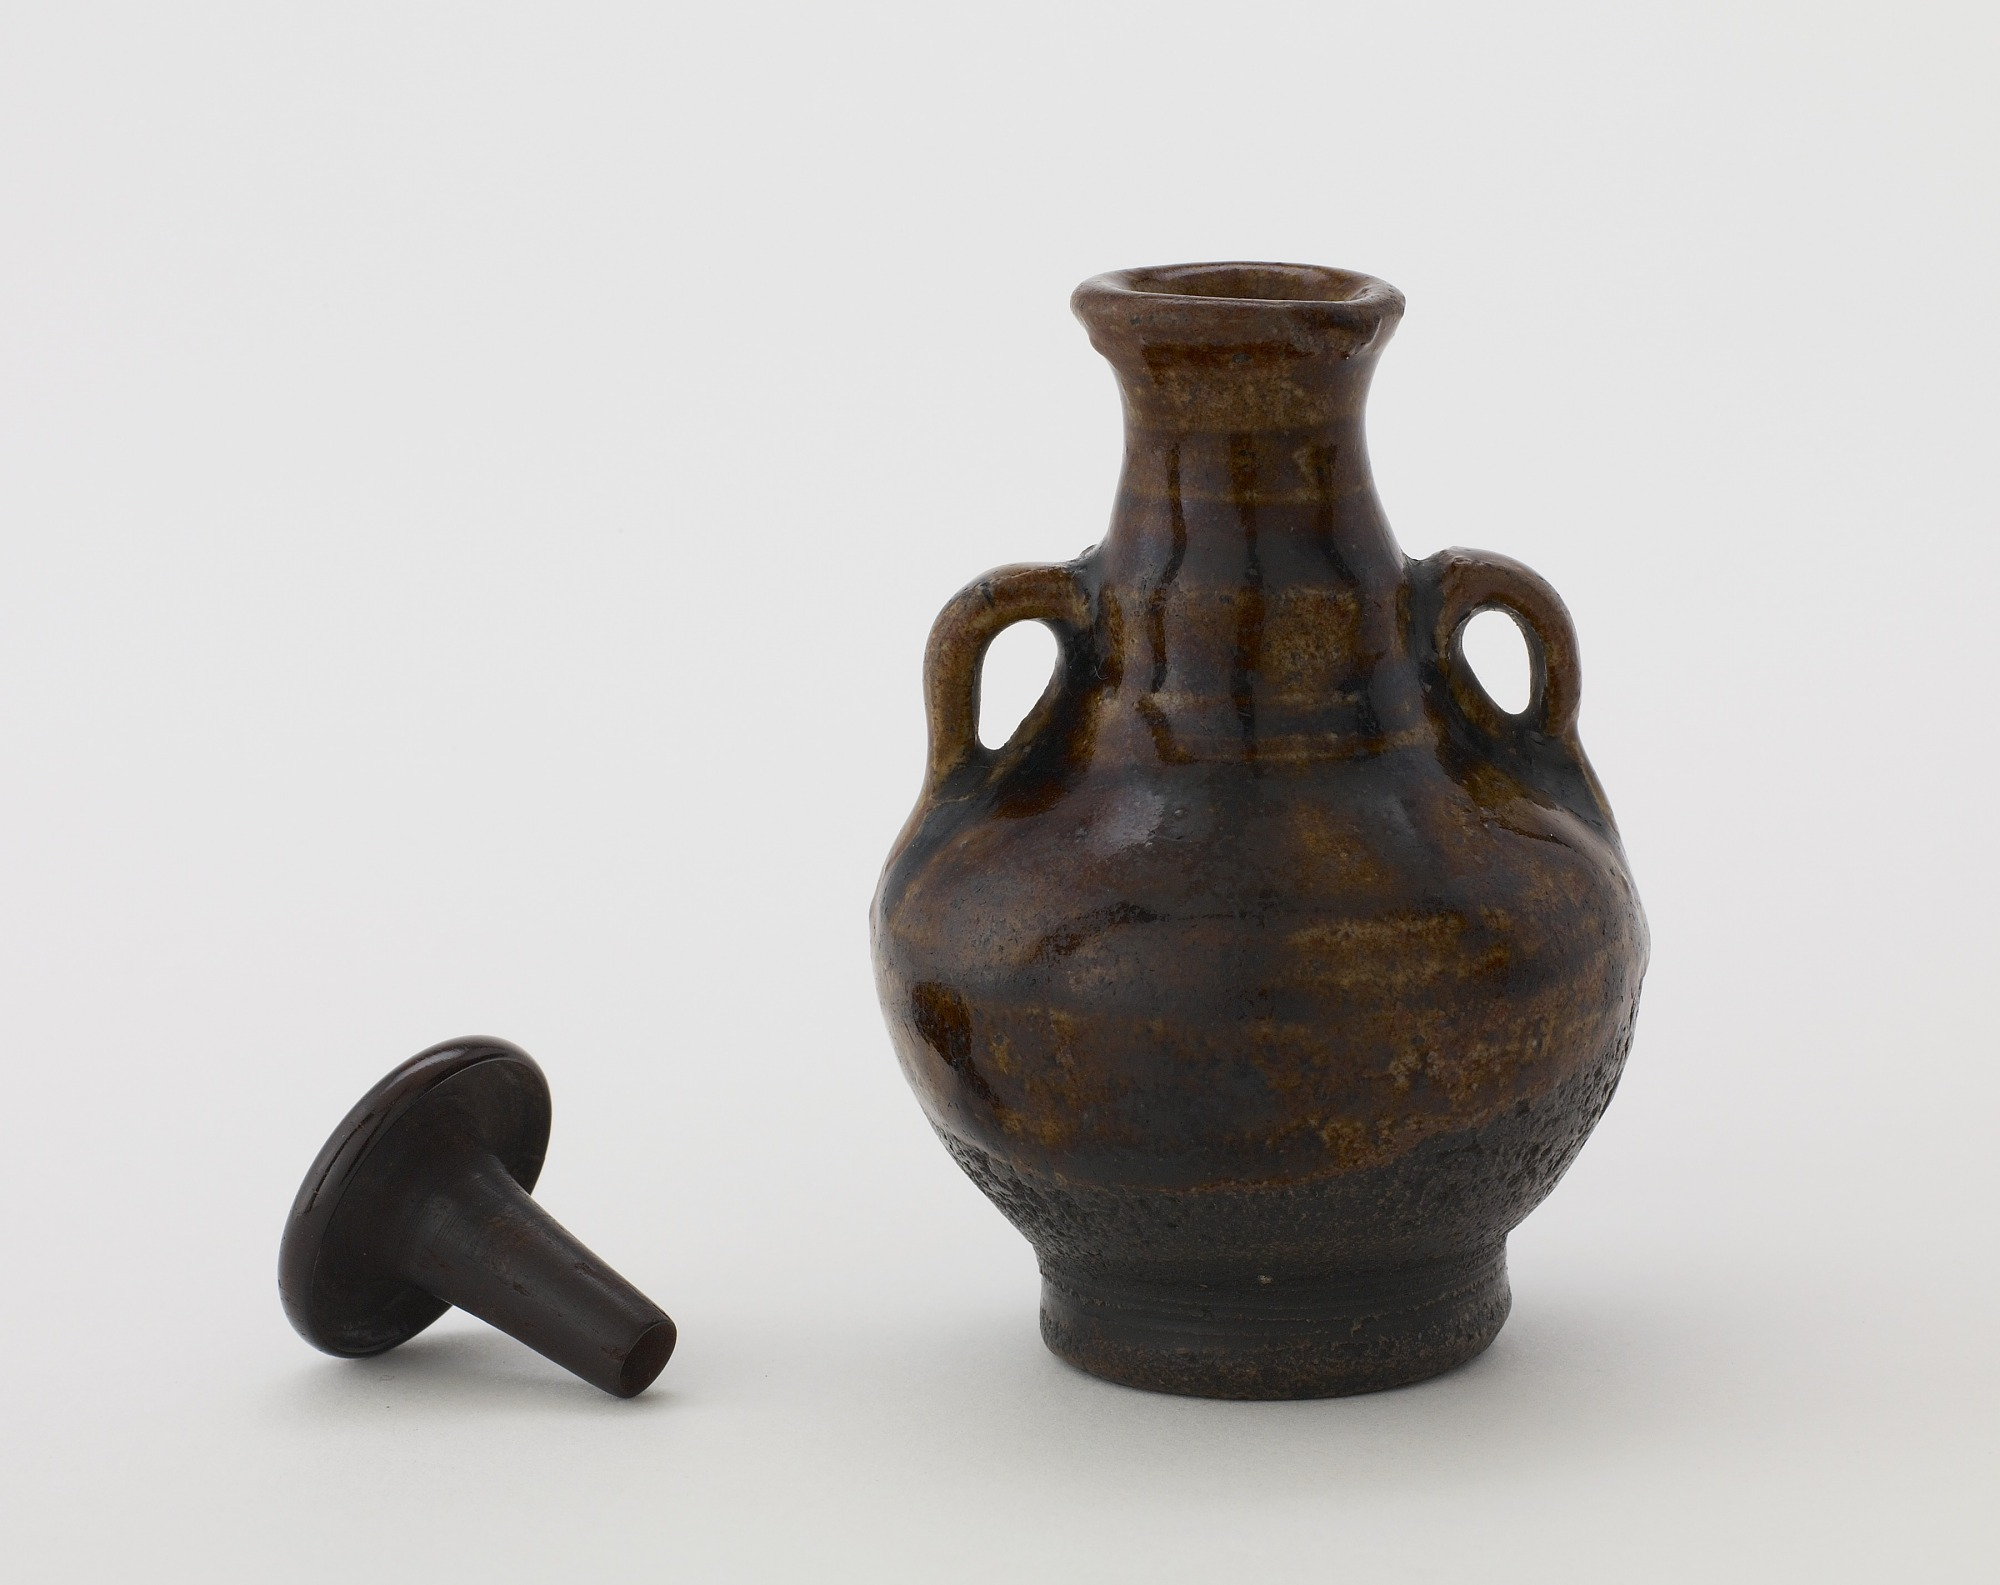 profile and lid: Bottle with two vertical ring hangles and lid